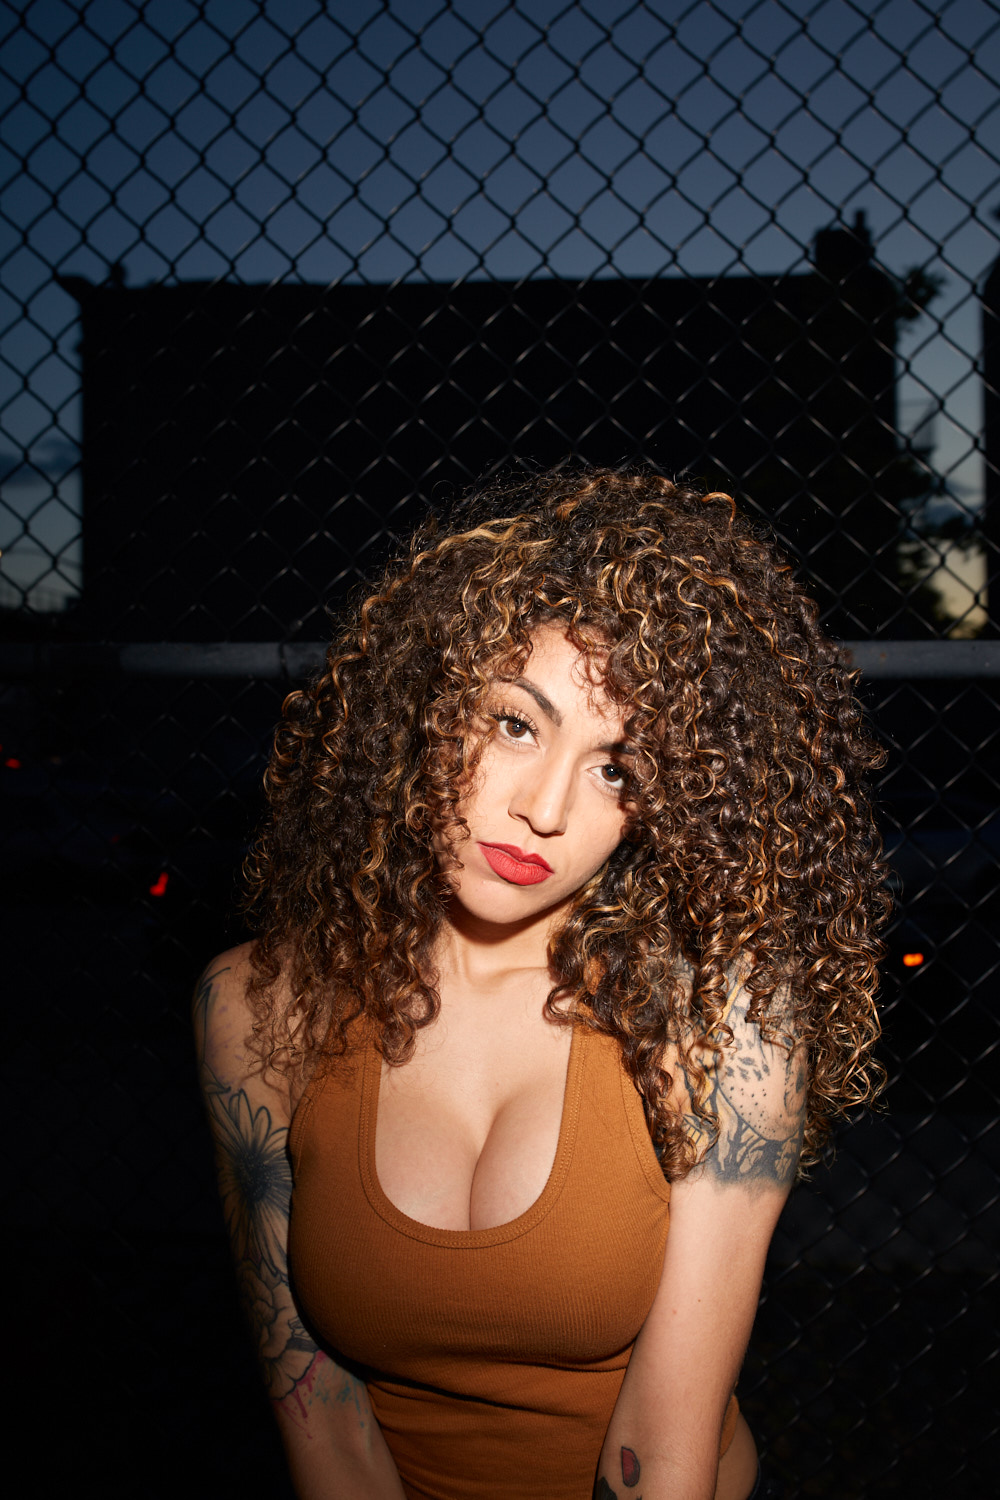 Fashion Photographer New York City | Tattooed Latina Model in Tank Top in Brooklyn Park at Night